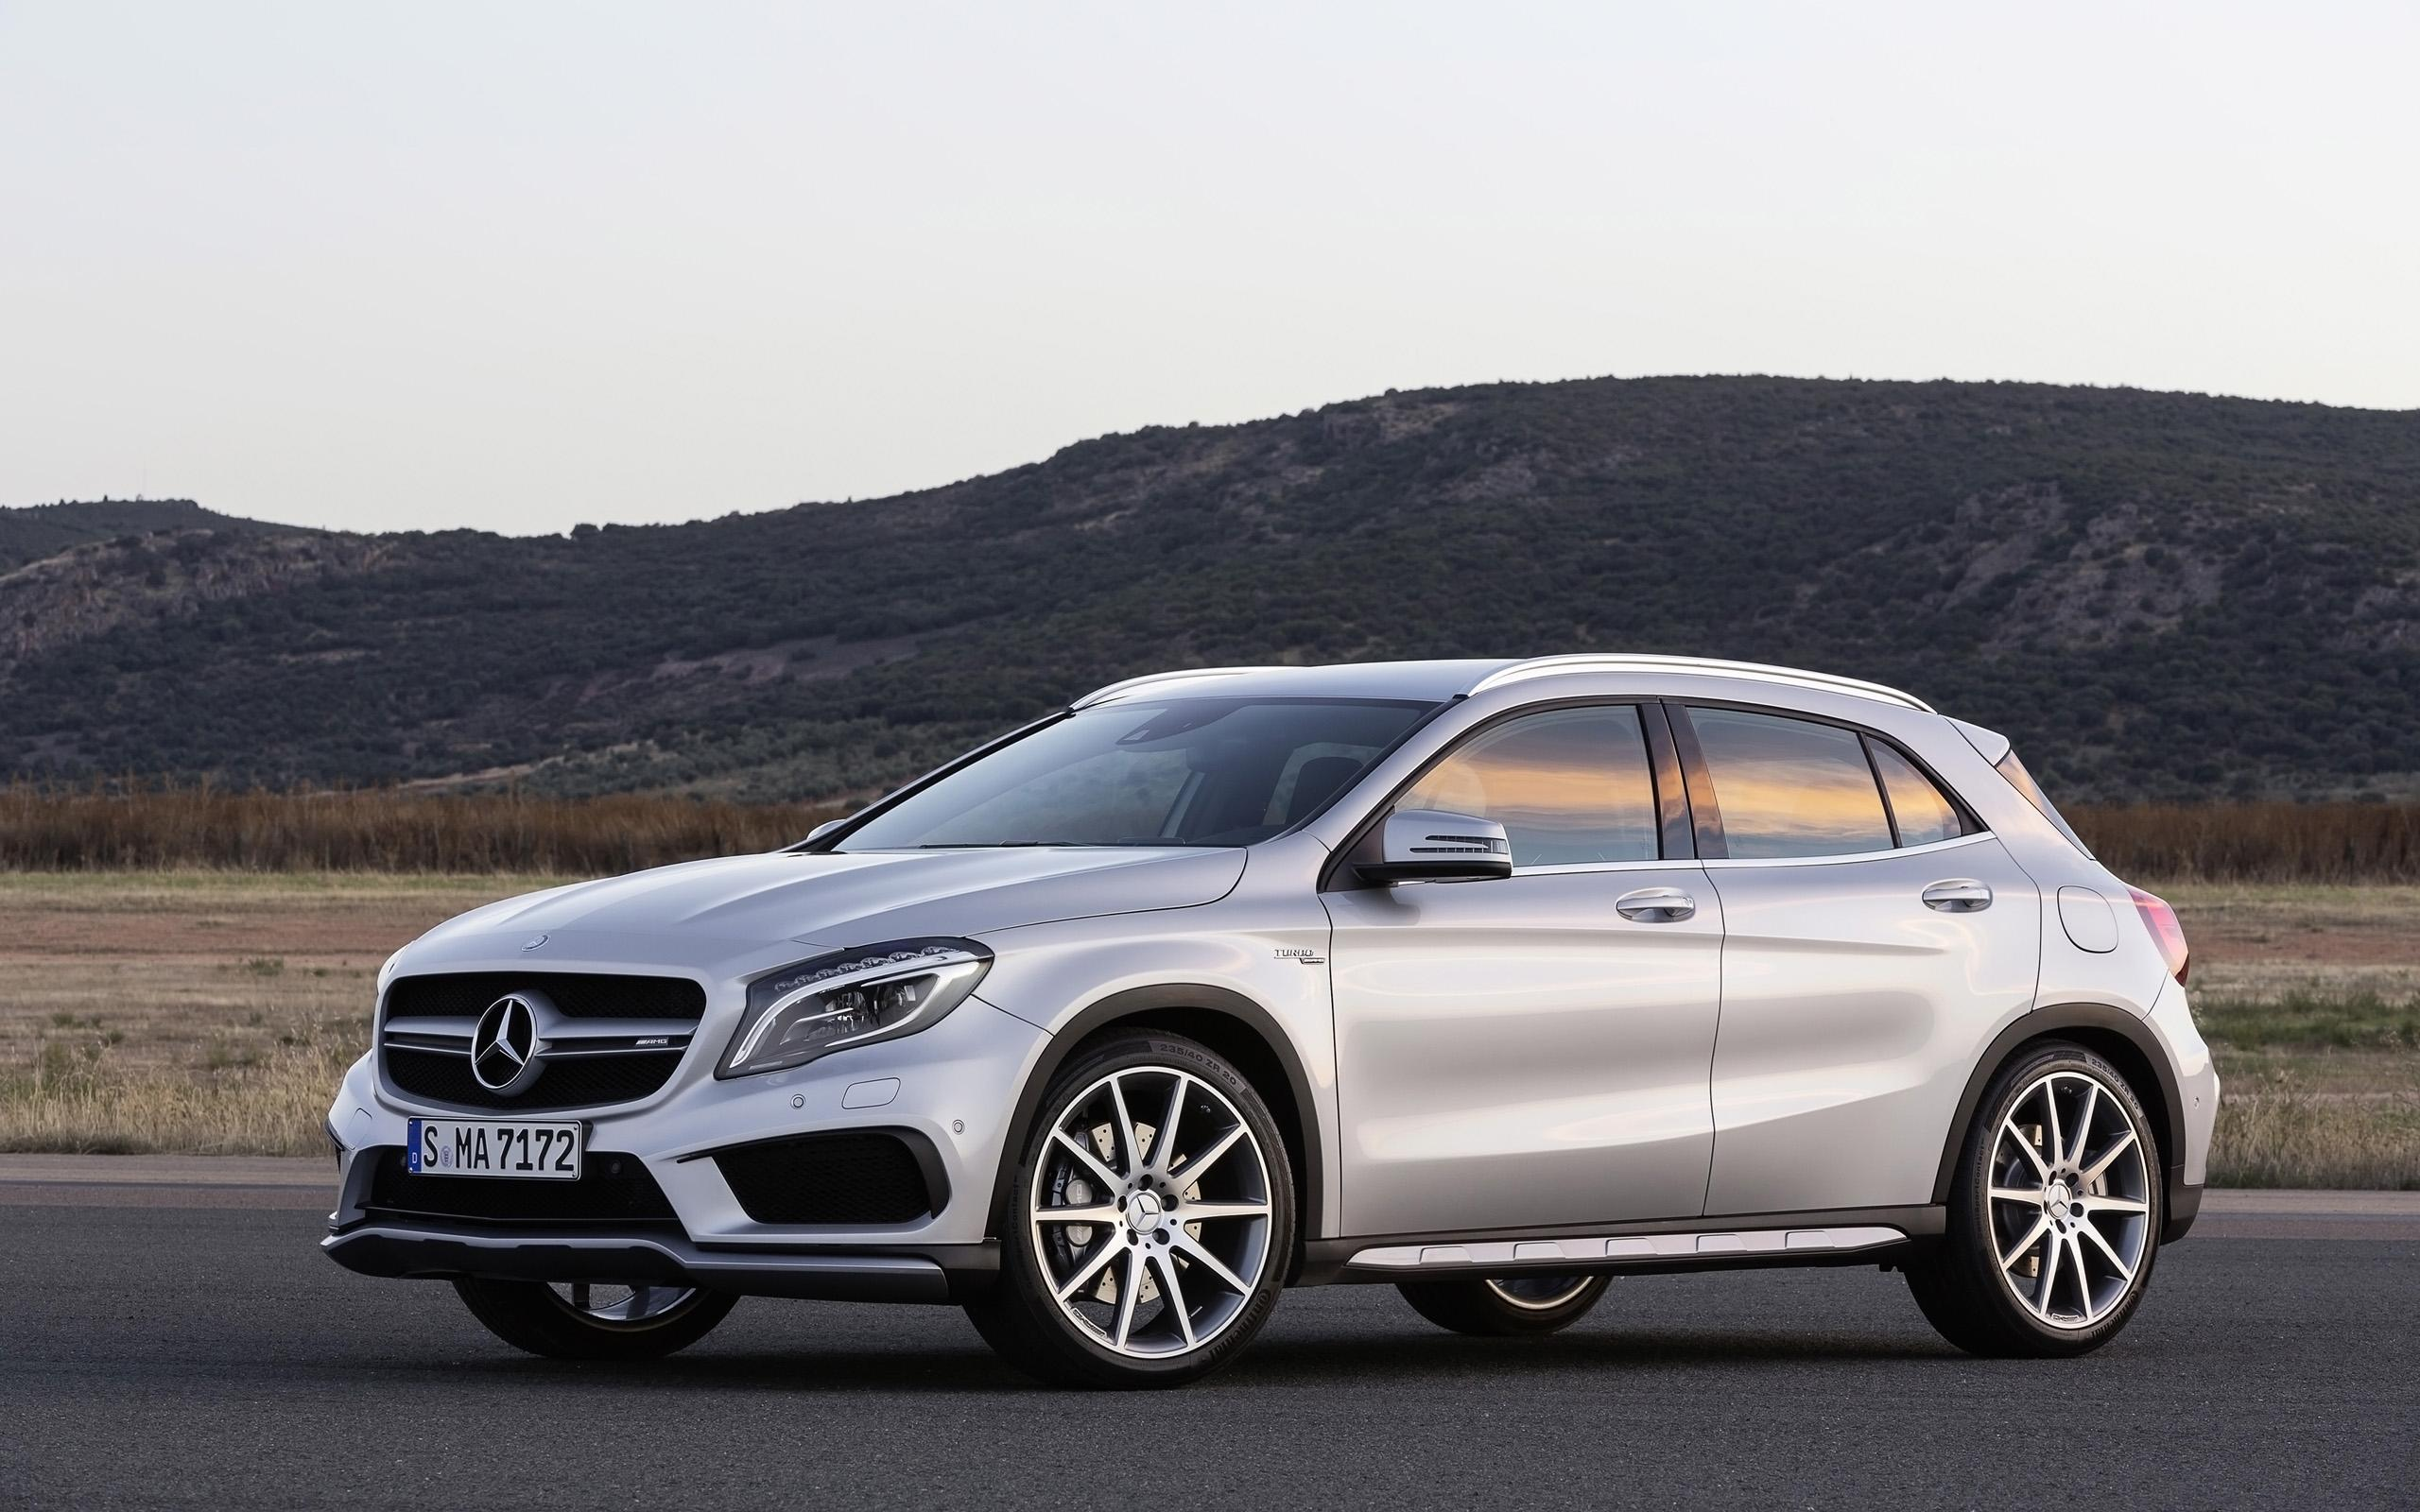 2014 Mercedes Benz GLA-45 AMG rf wallpaper | 2560x1600 | 221596 ...